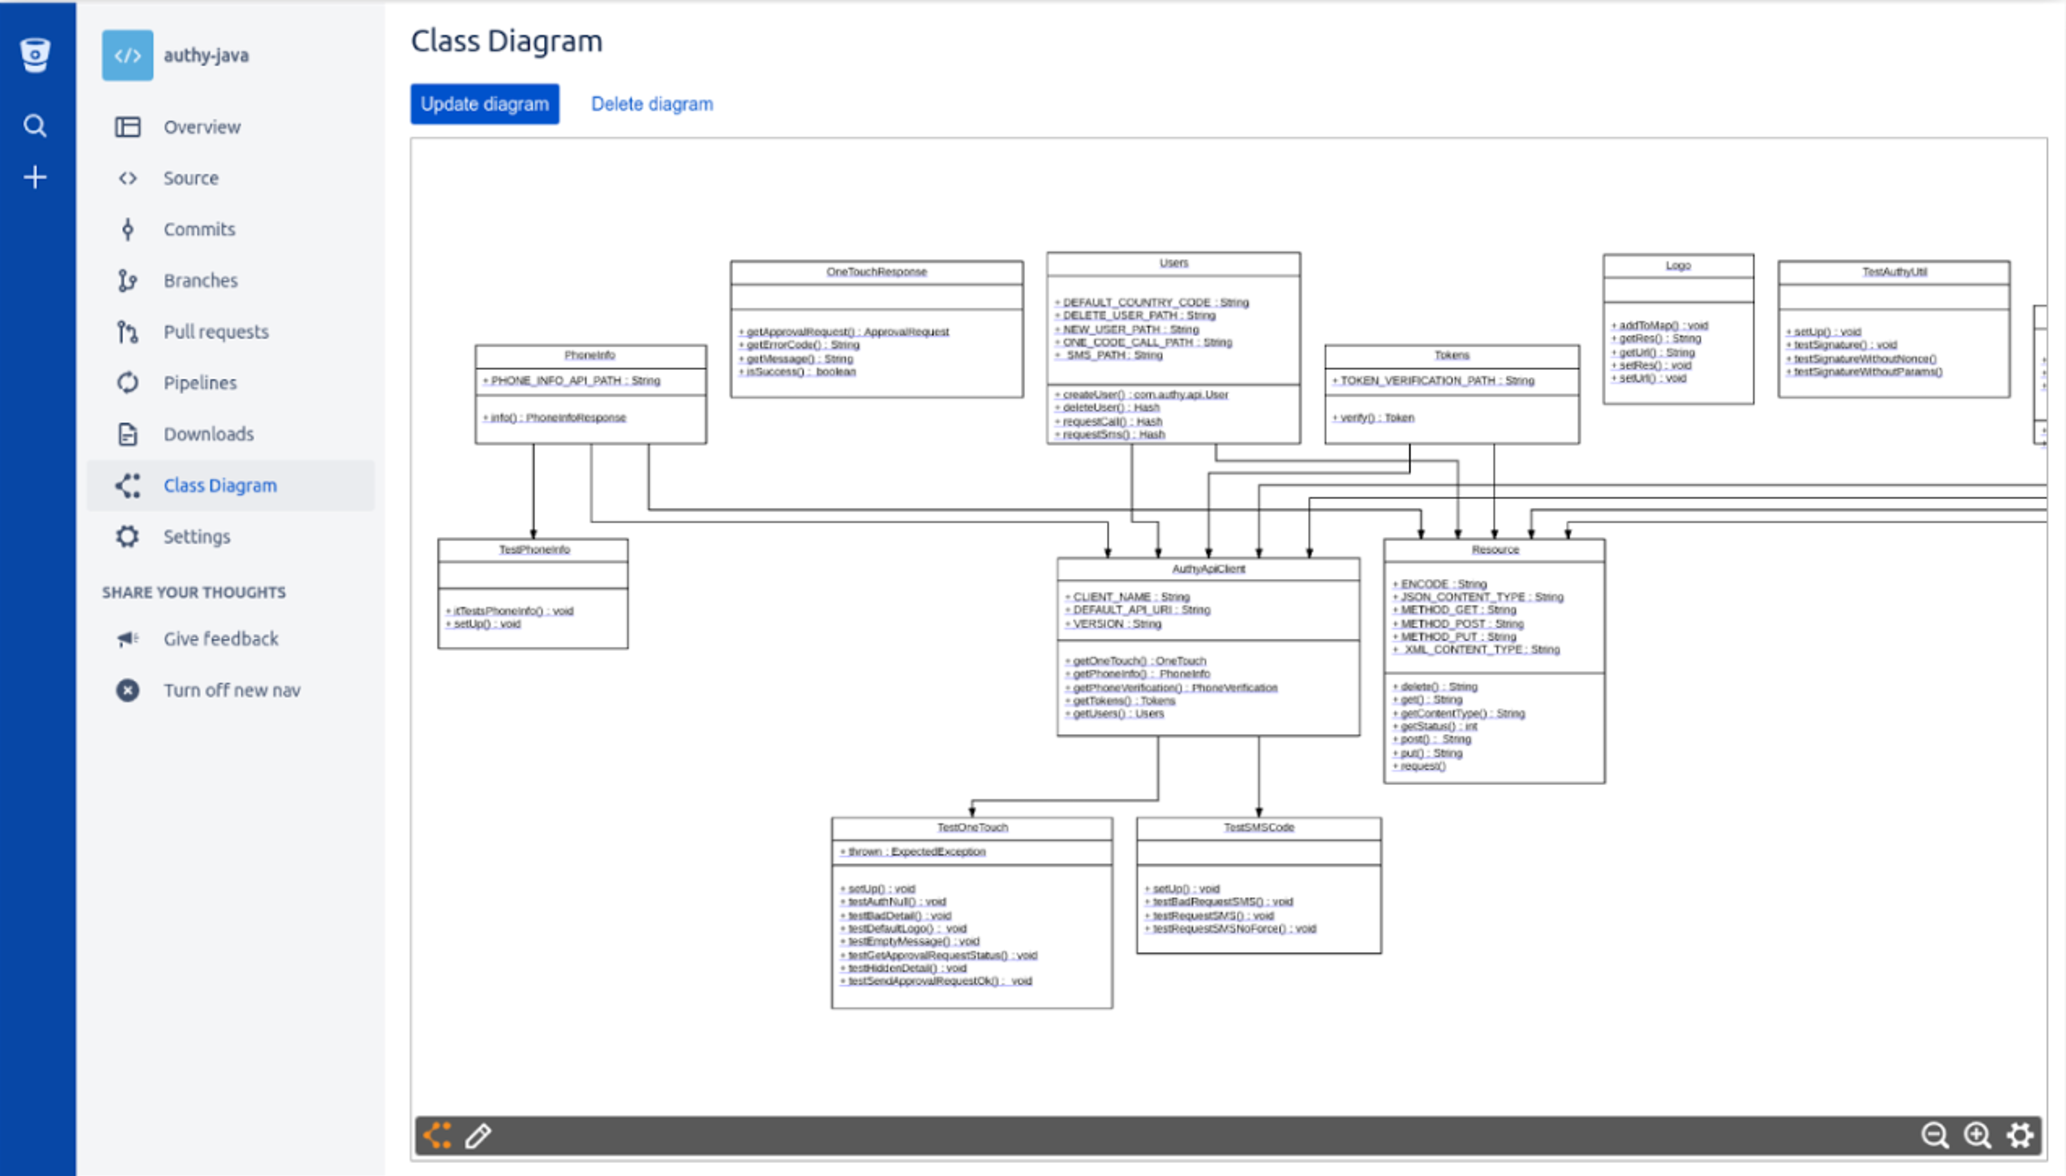 Generate Class Diagrams On Bitbucket Cloud With Lucidchart